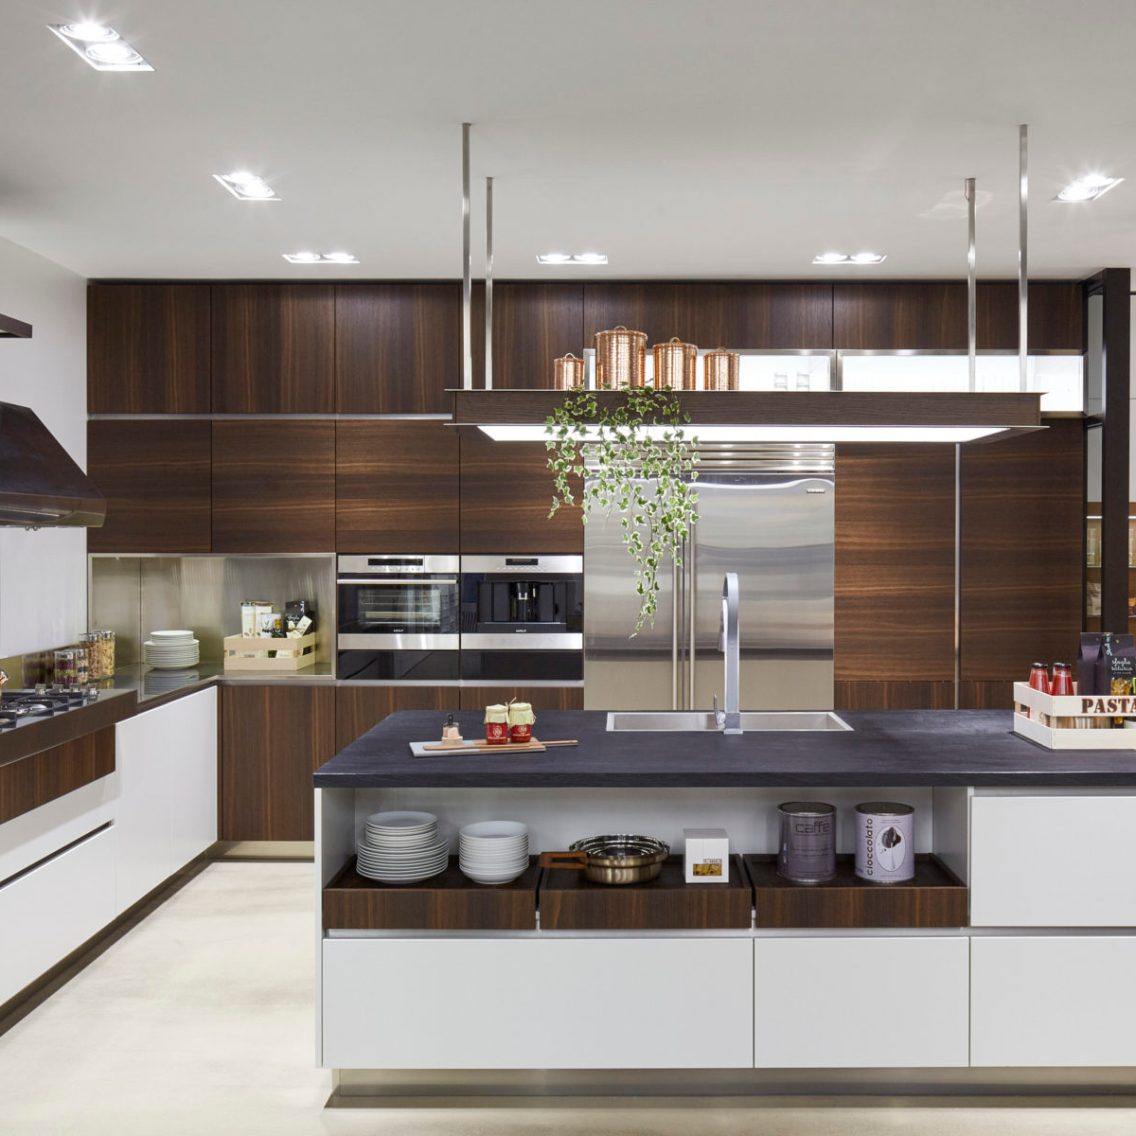 Kitchen Showrooms Nyc: Spectrum Kitchens